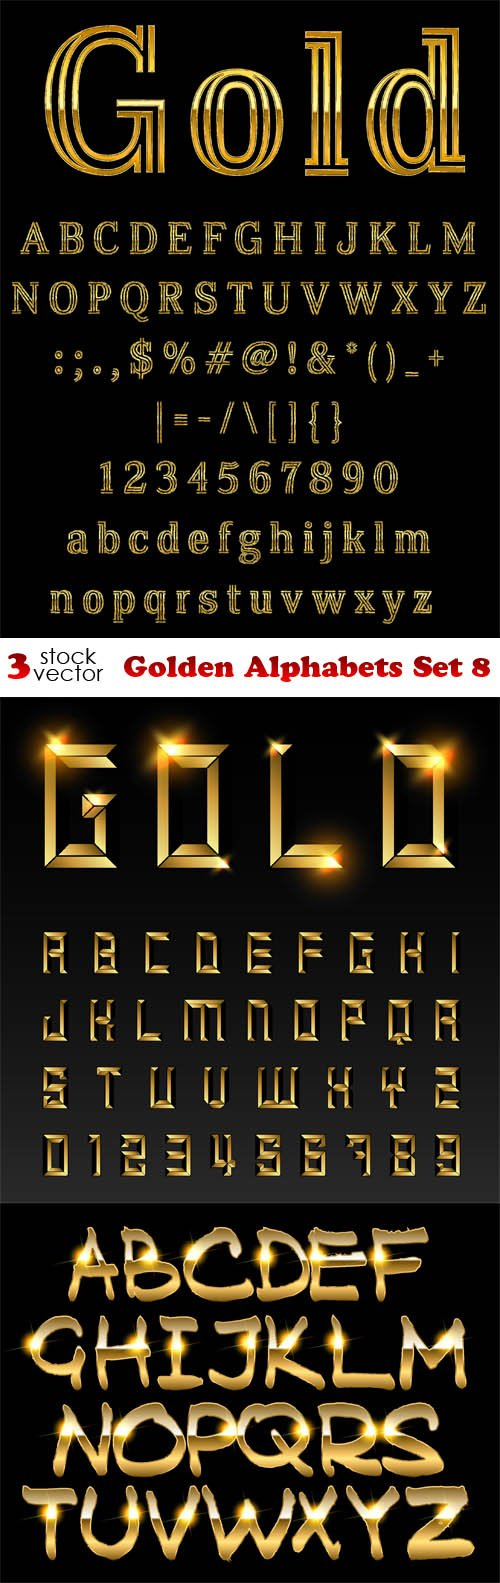 Vectors - Golden Alphabets Set 8